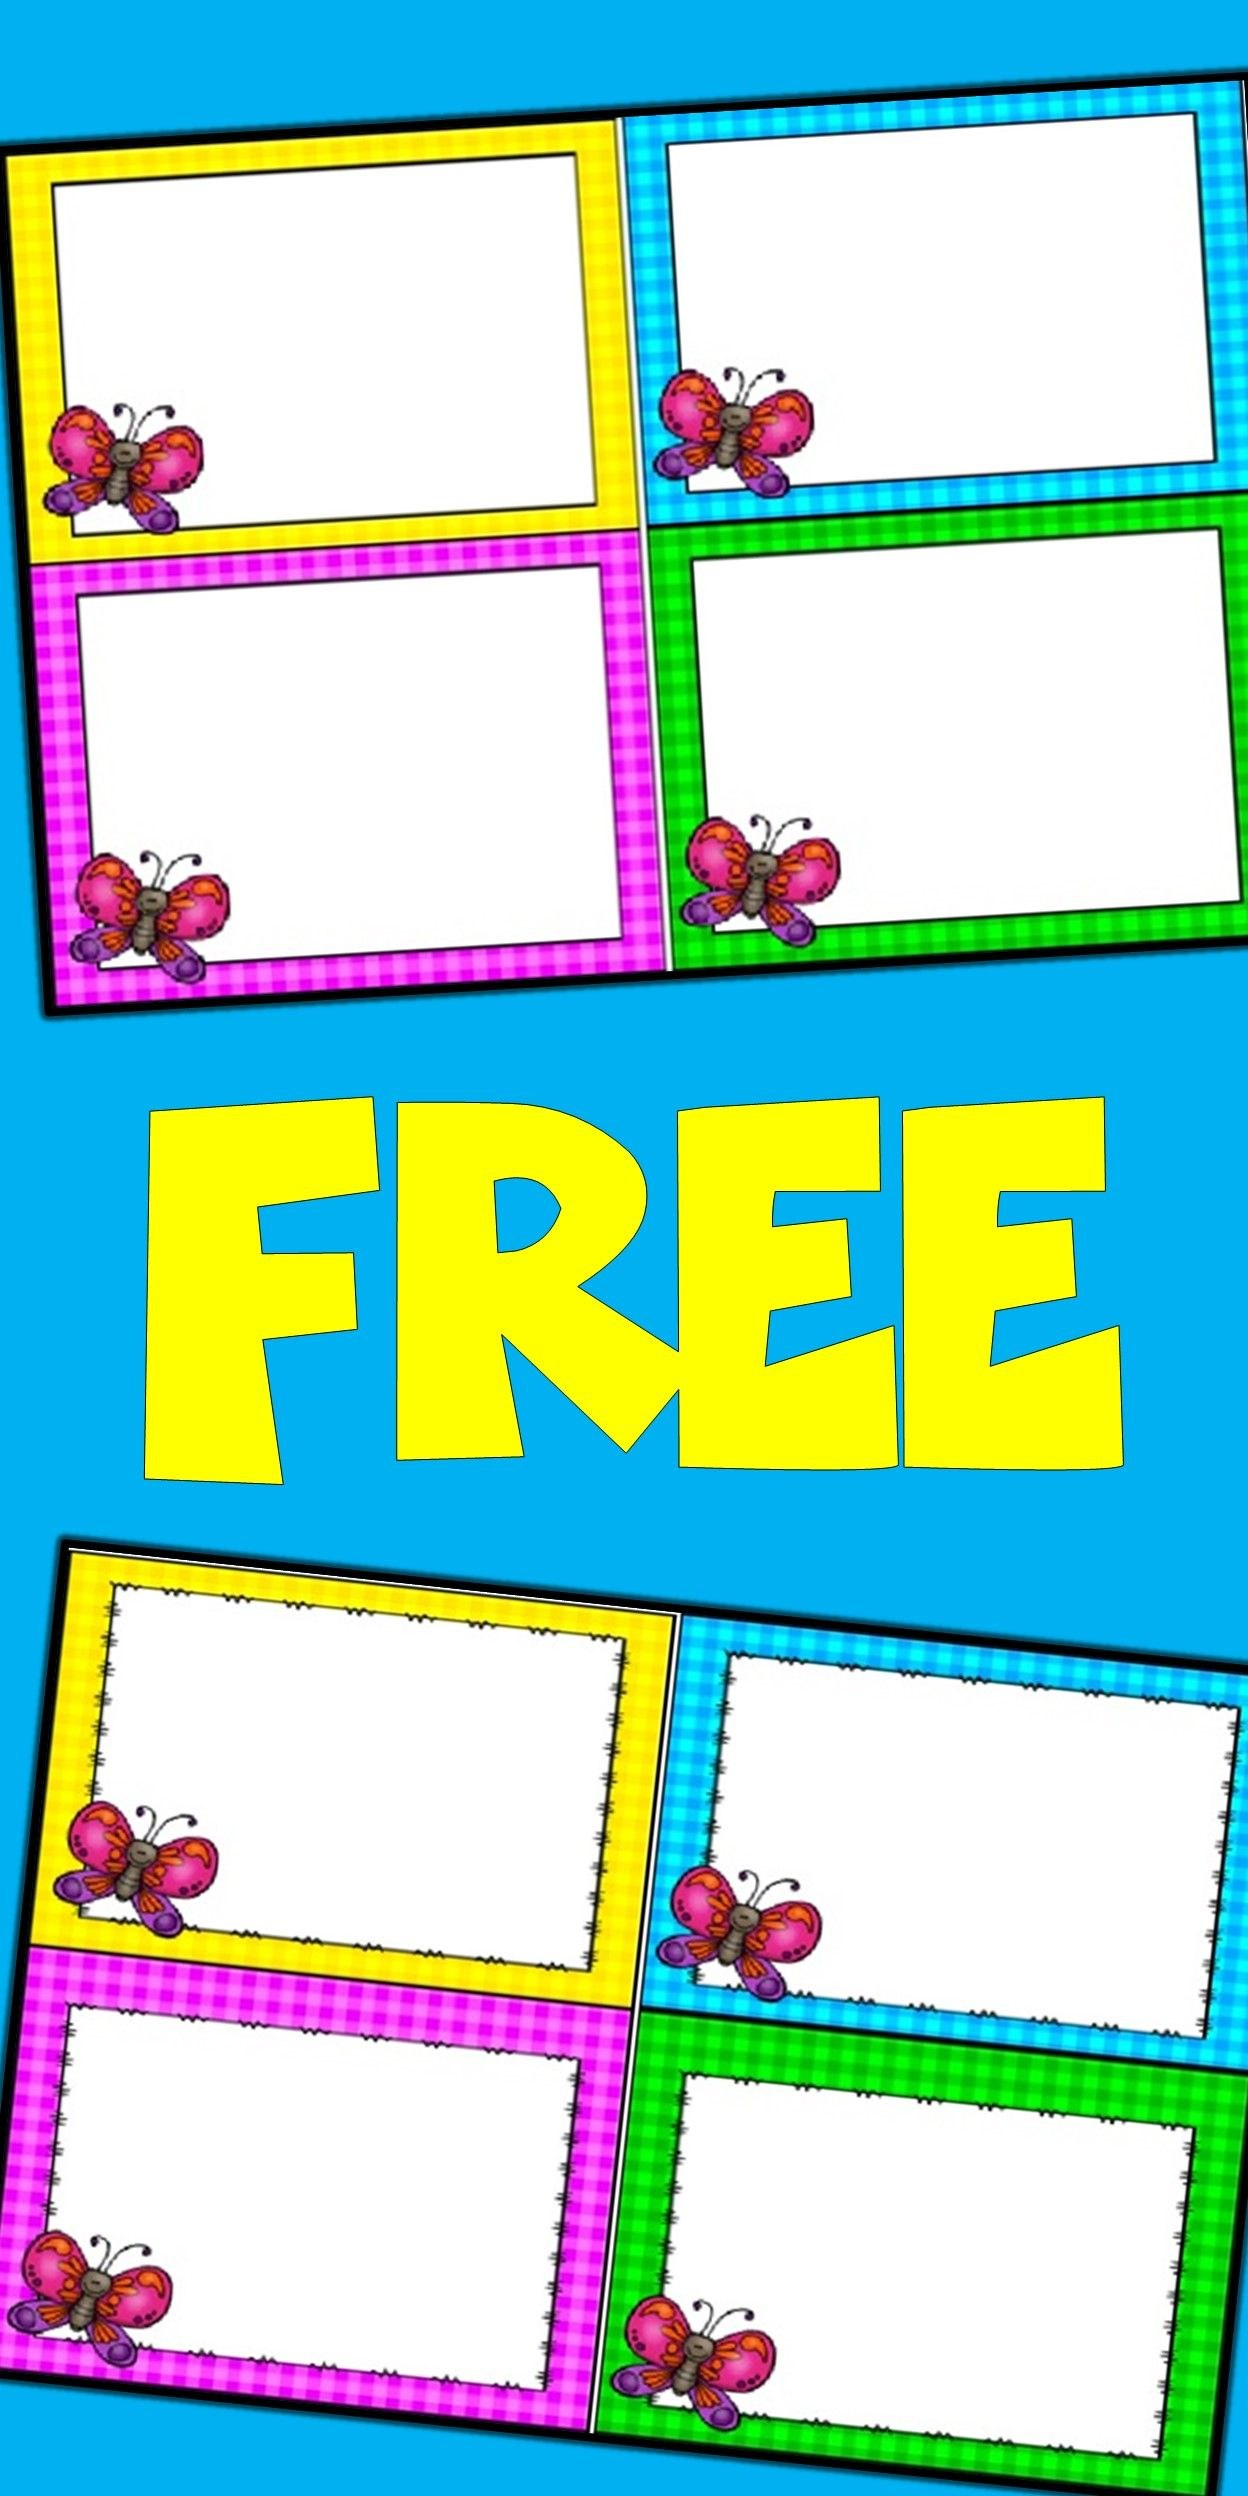 Free Editable Spring Card Templates  Butterflies  Templates Intended For Task Cards Template